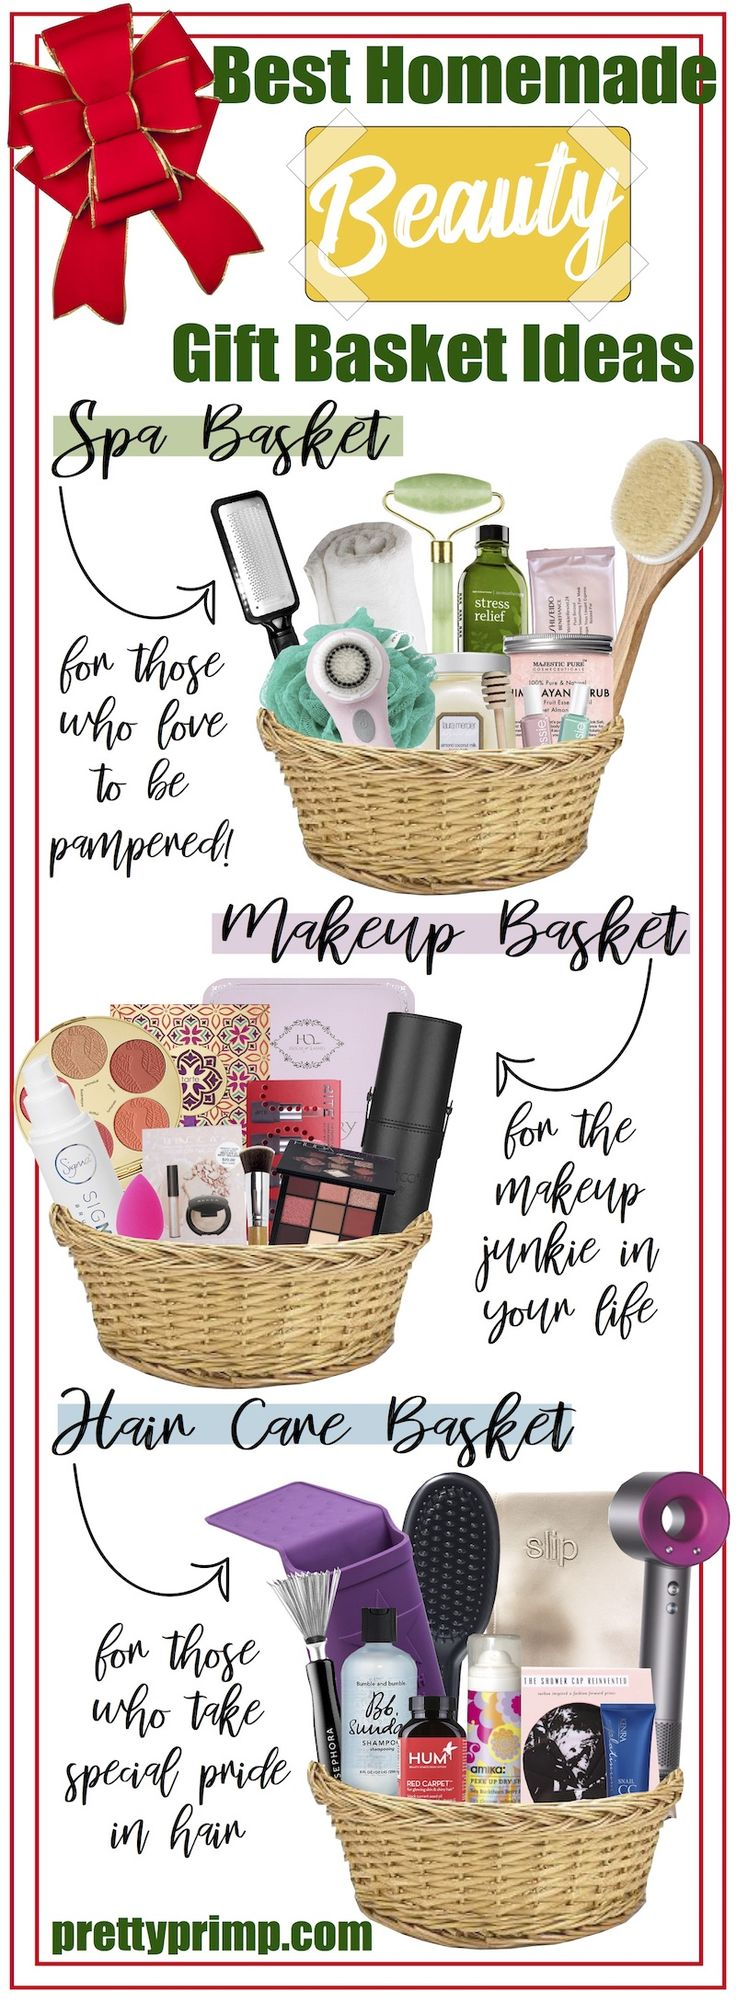 The best homemade and DIY gift basket ideas for women for Christmas! Check out these baskets filled with creative expensive AND cheap beauty products!